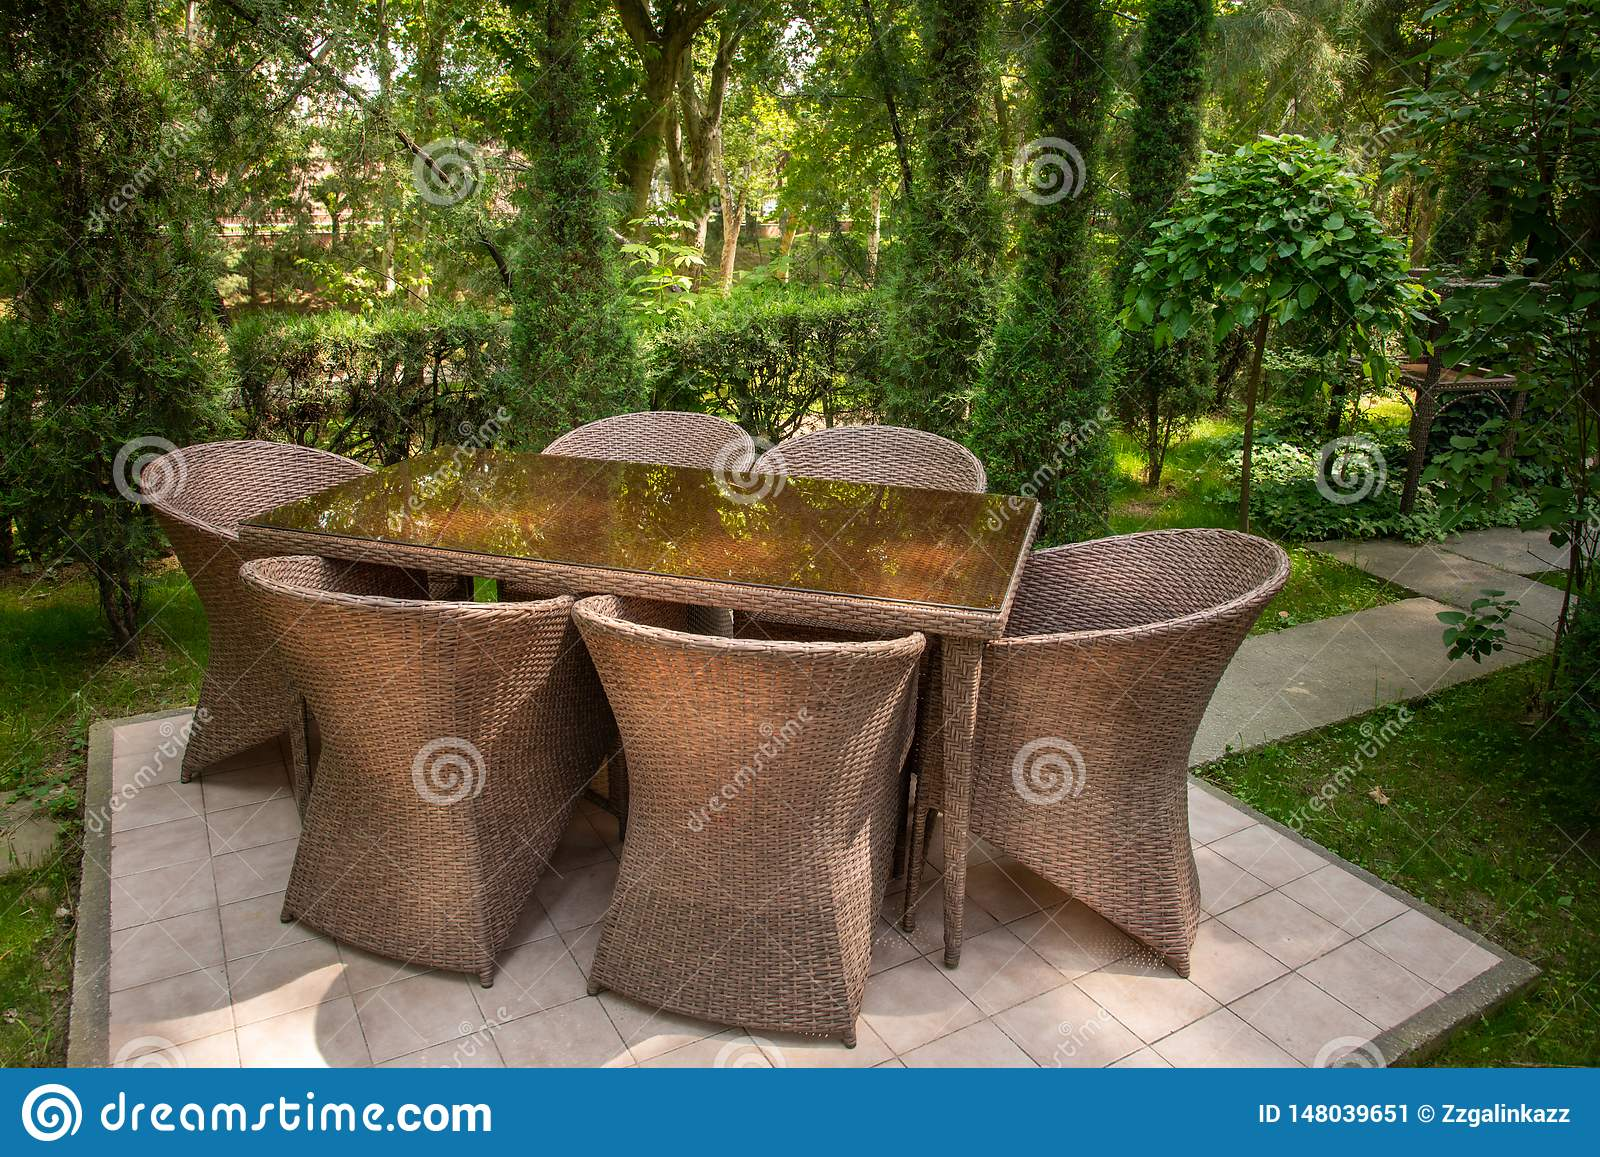 Wicker chairs and table are in the garden near trees